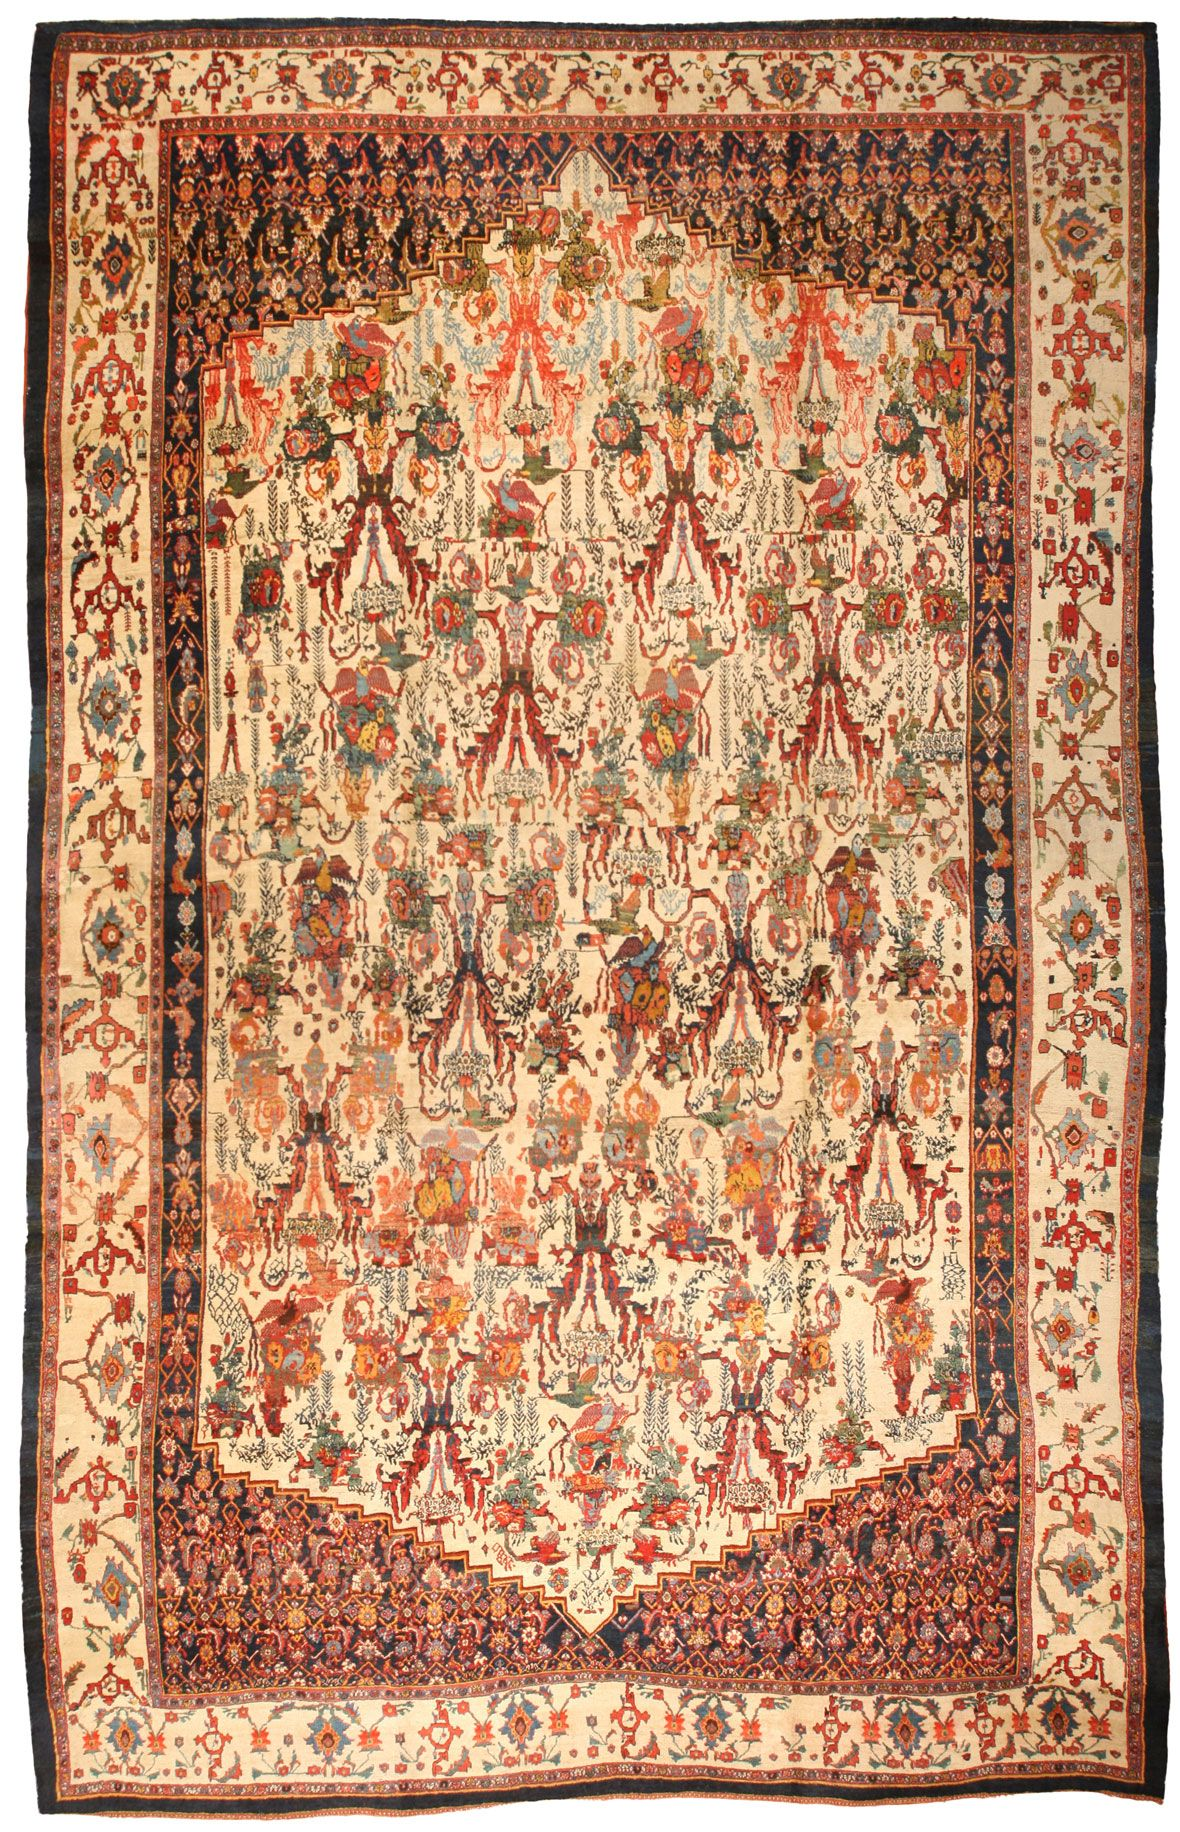 Bijar Tapijt Antique Persian Bidjar Bijar Rugs The Iron Carpet Of Iran Are